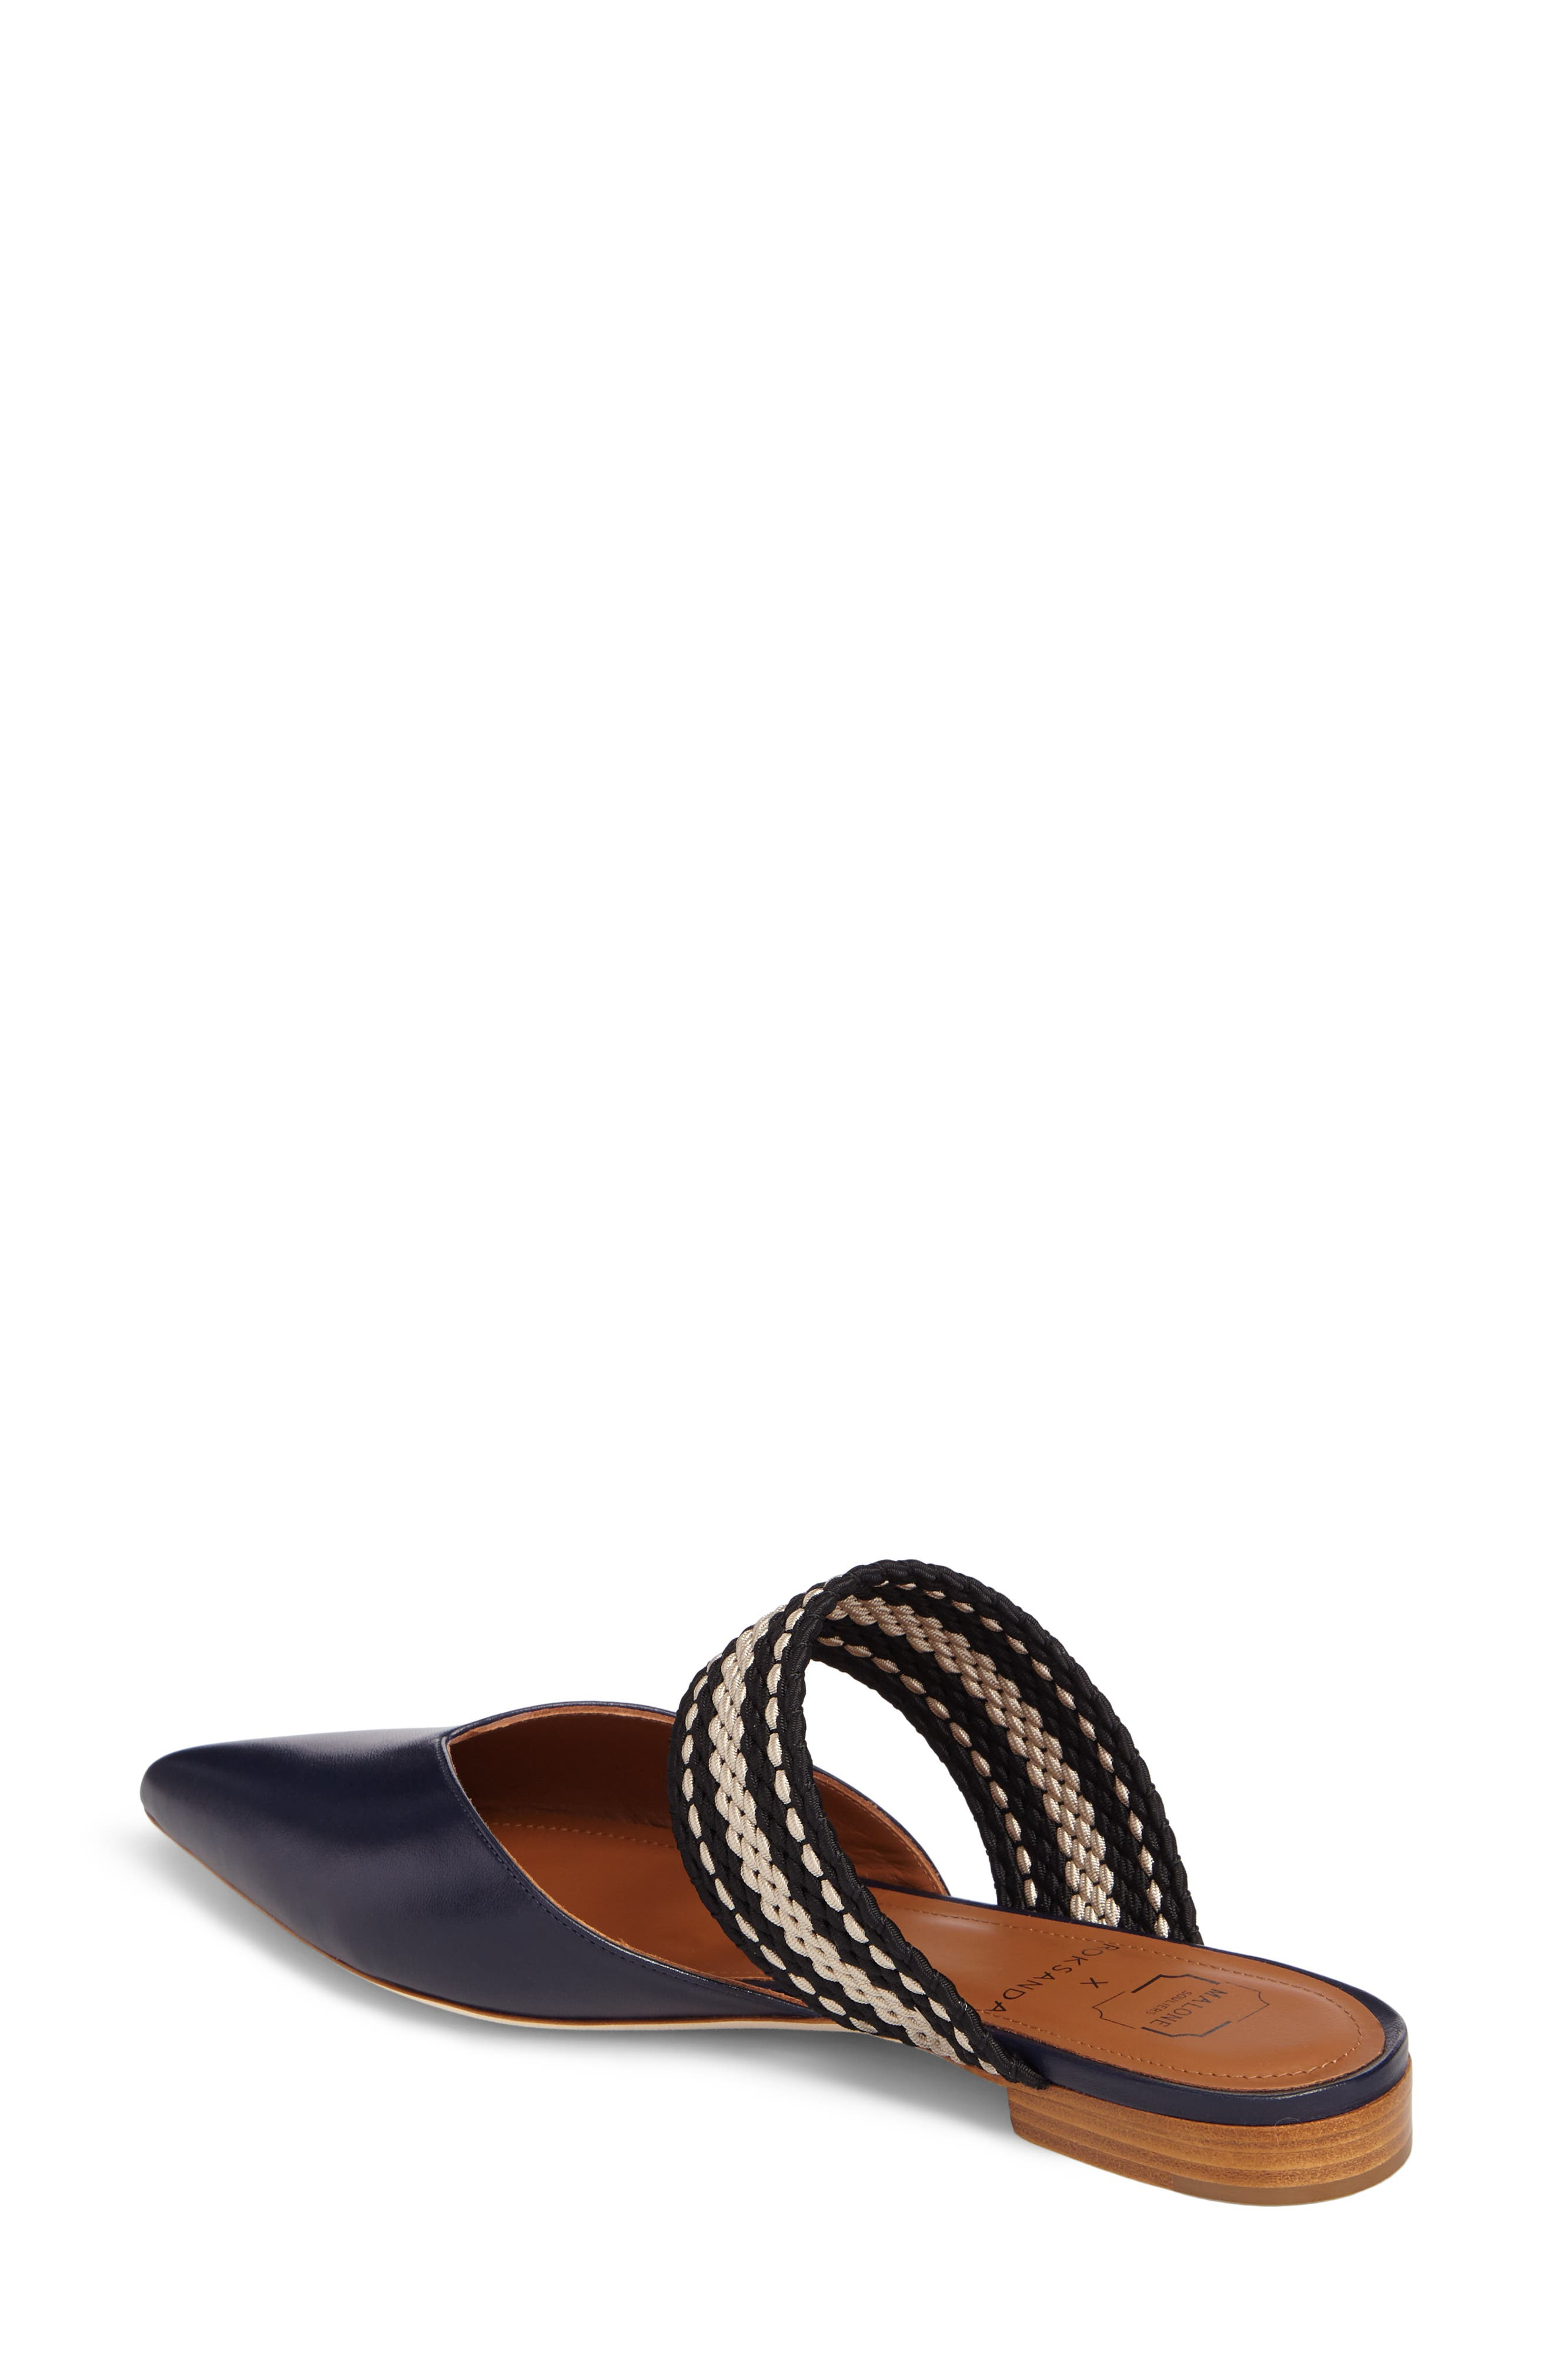 Malone Souliers Hannah Pointy Toe Mule,                             Alternate thumbnail 2, color,                             400